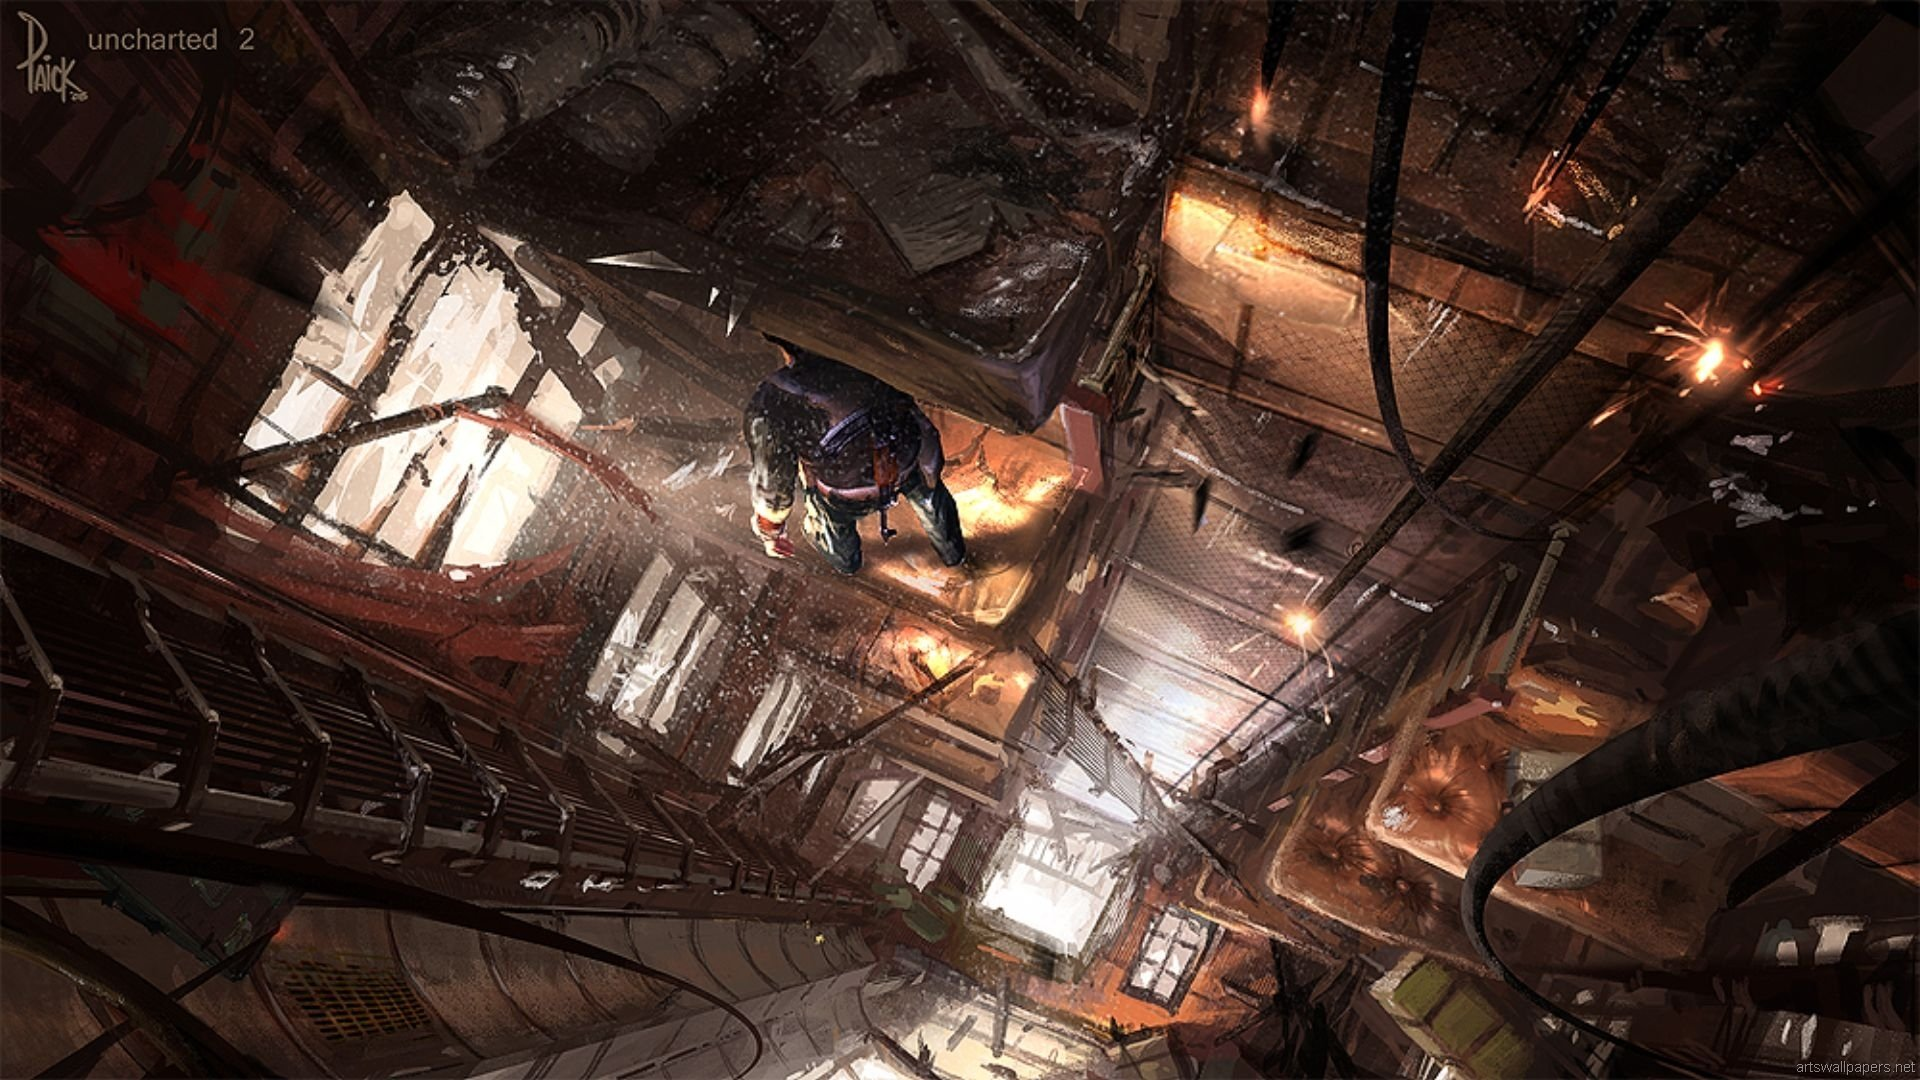 Video Game - Uncharted 2: Among Thieves  Wallpaper